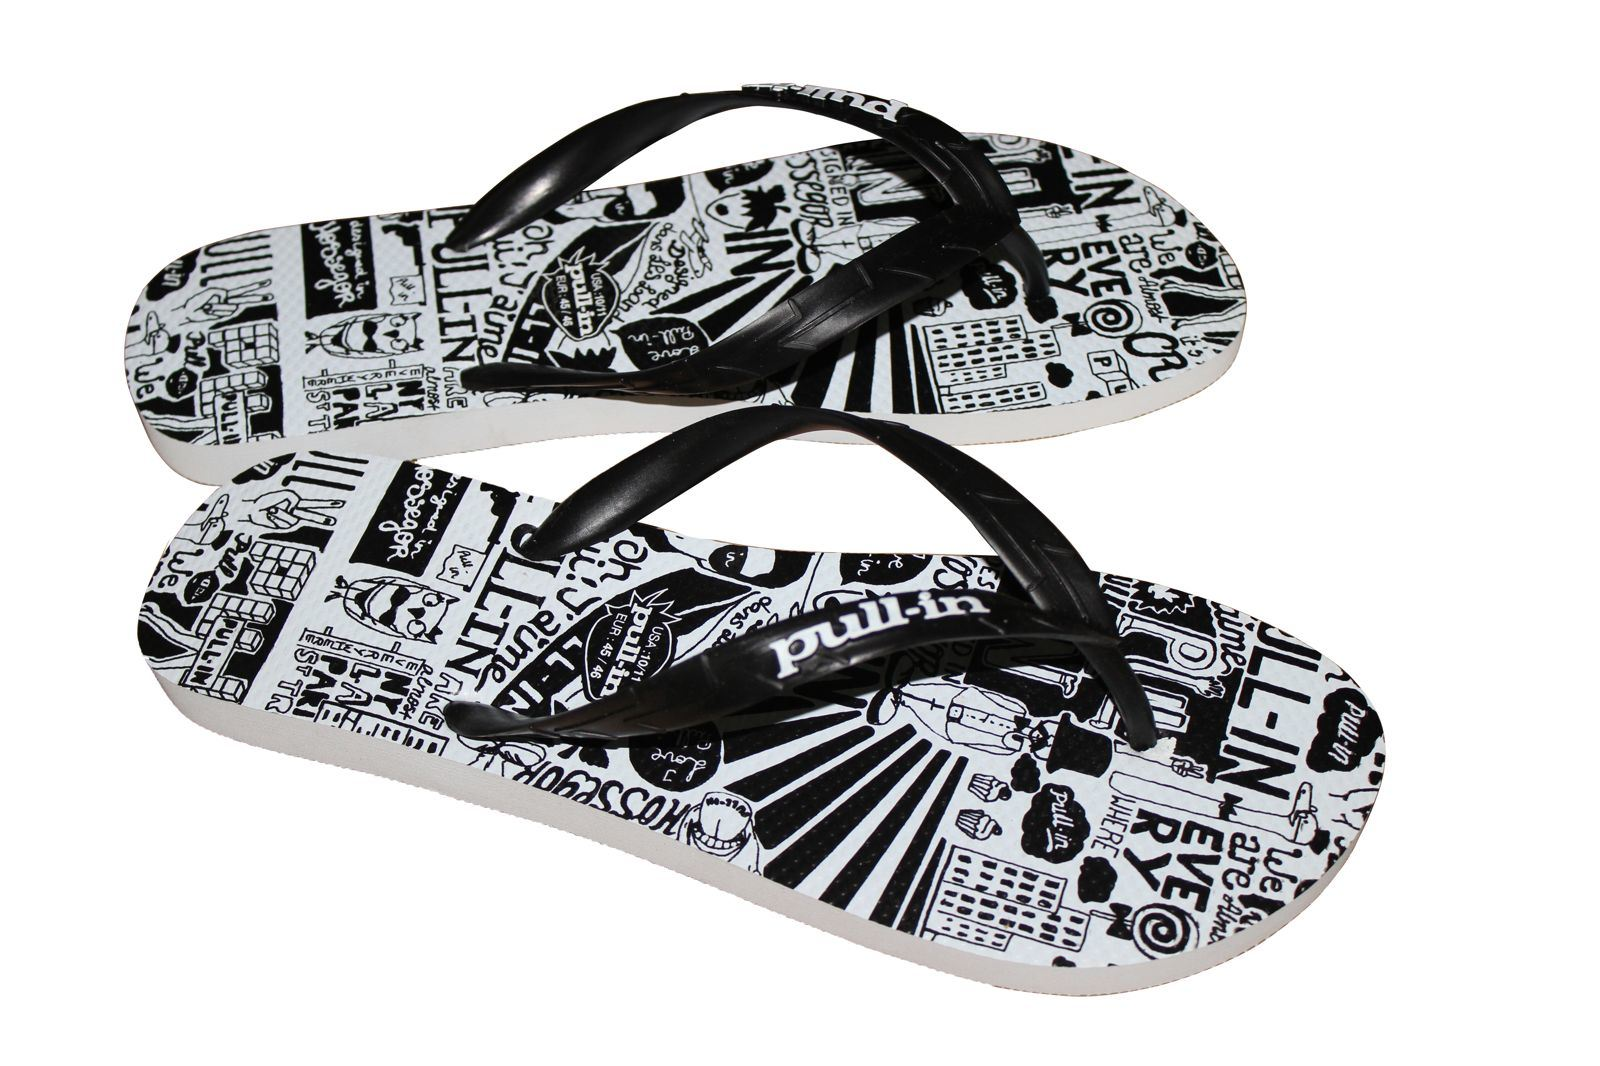 Last Fashion Rubber Colorful Printing Flip Flops